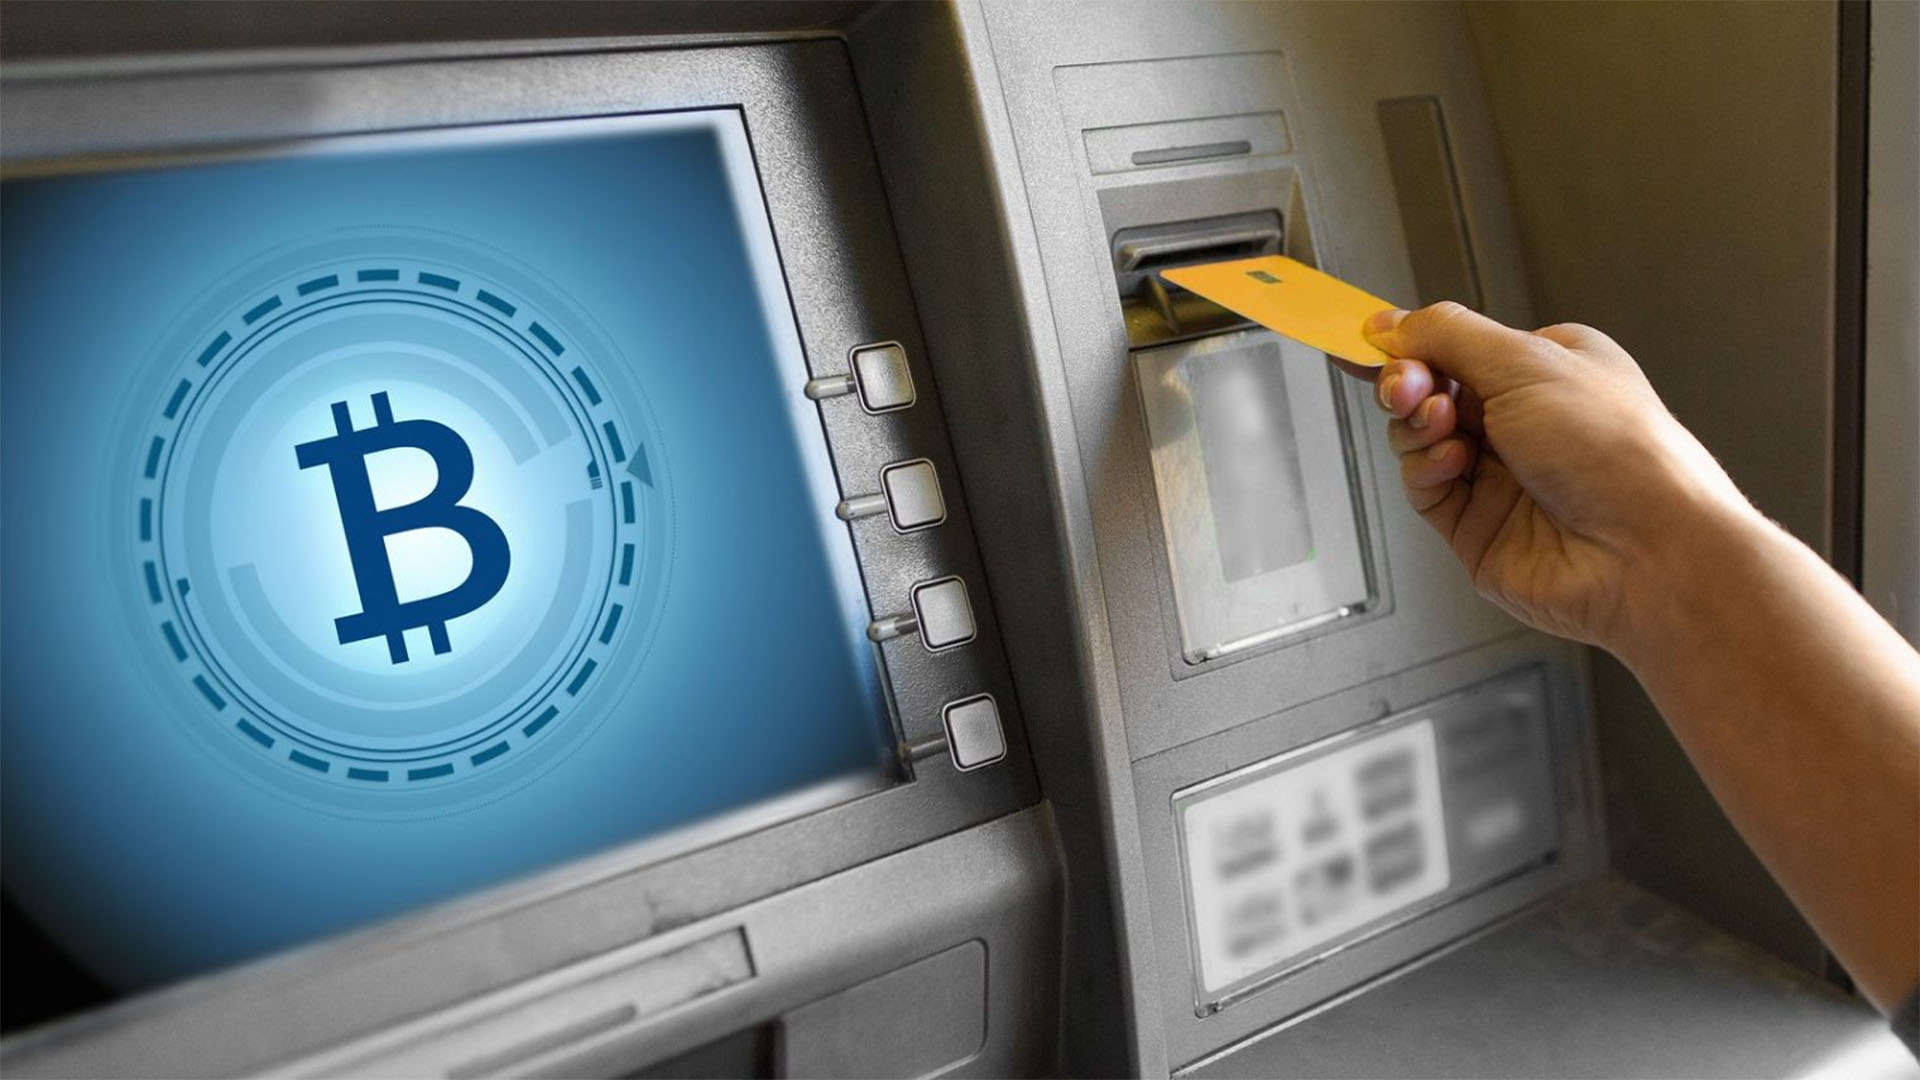 The security of doing the transactions yourself